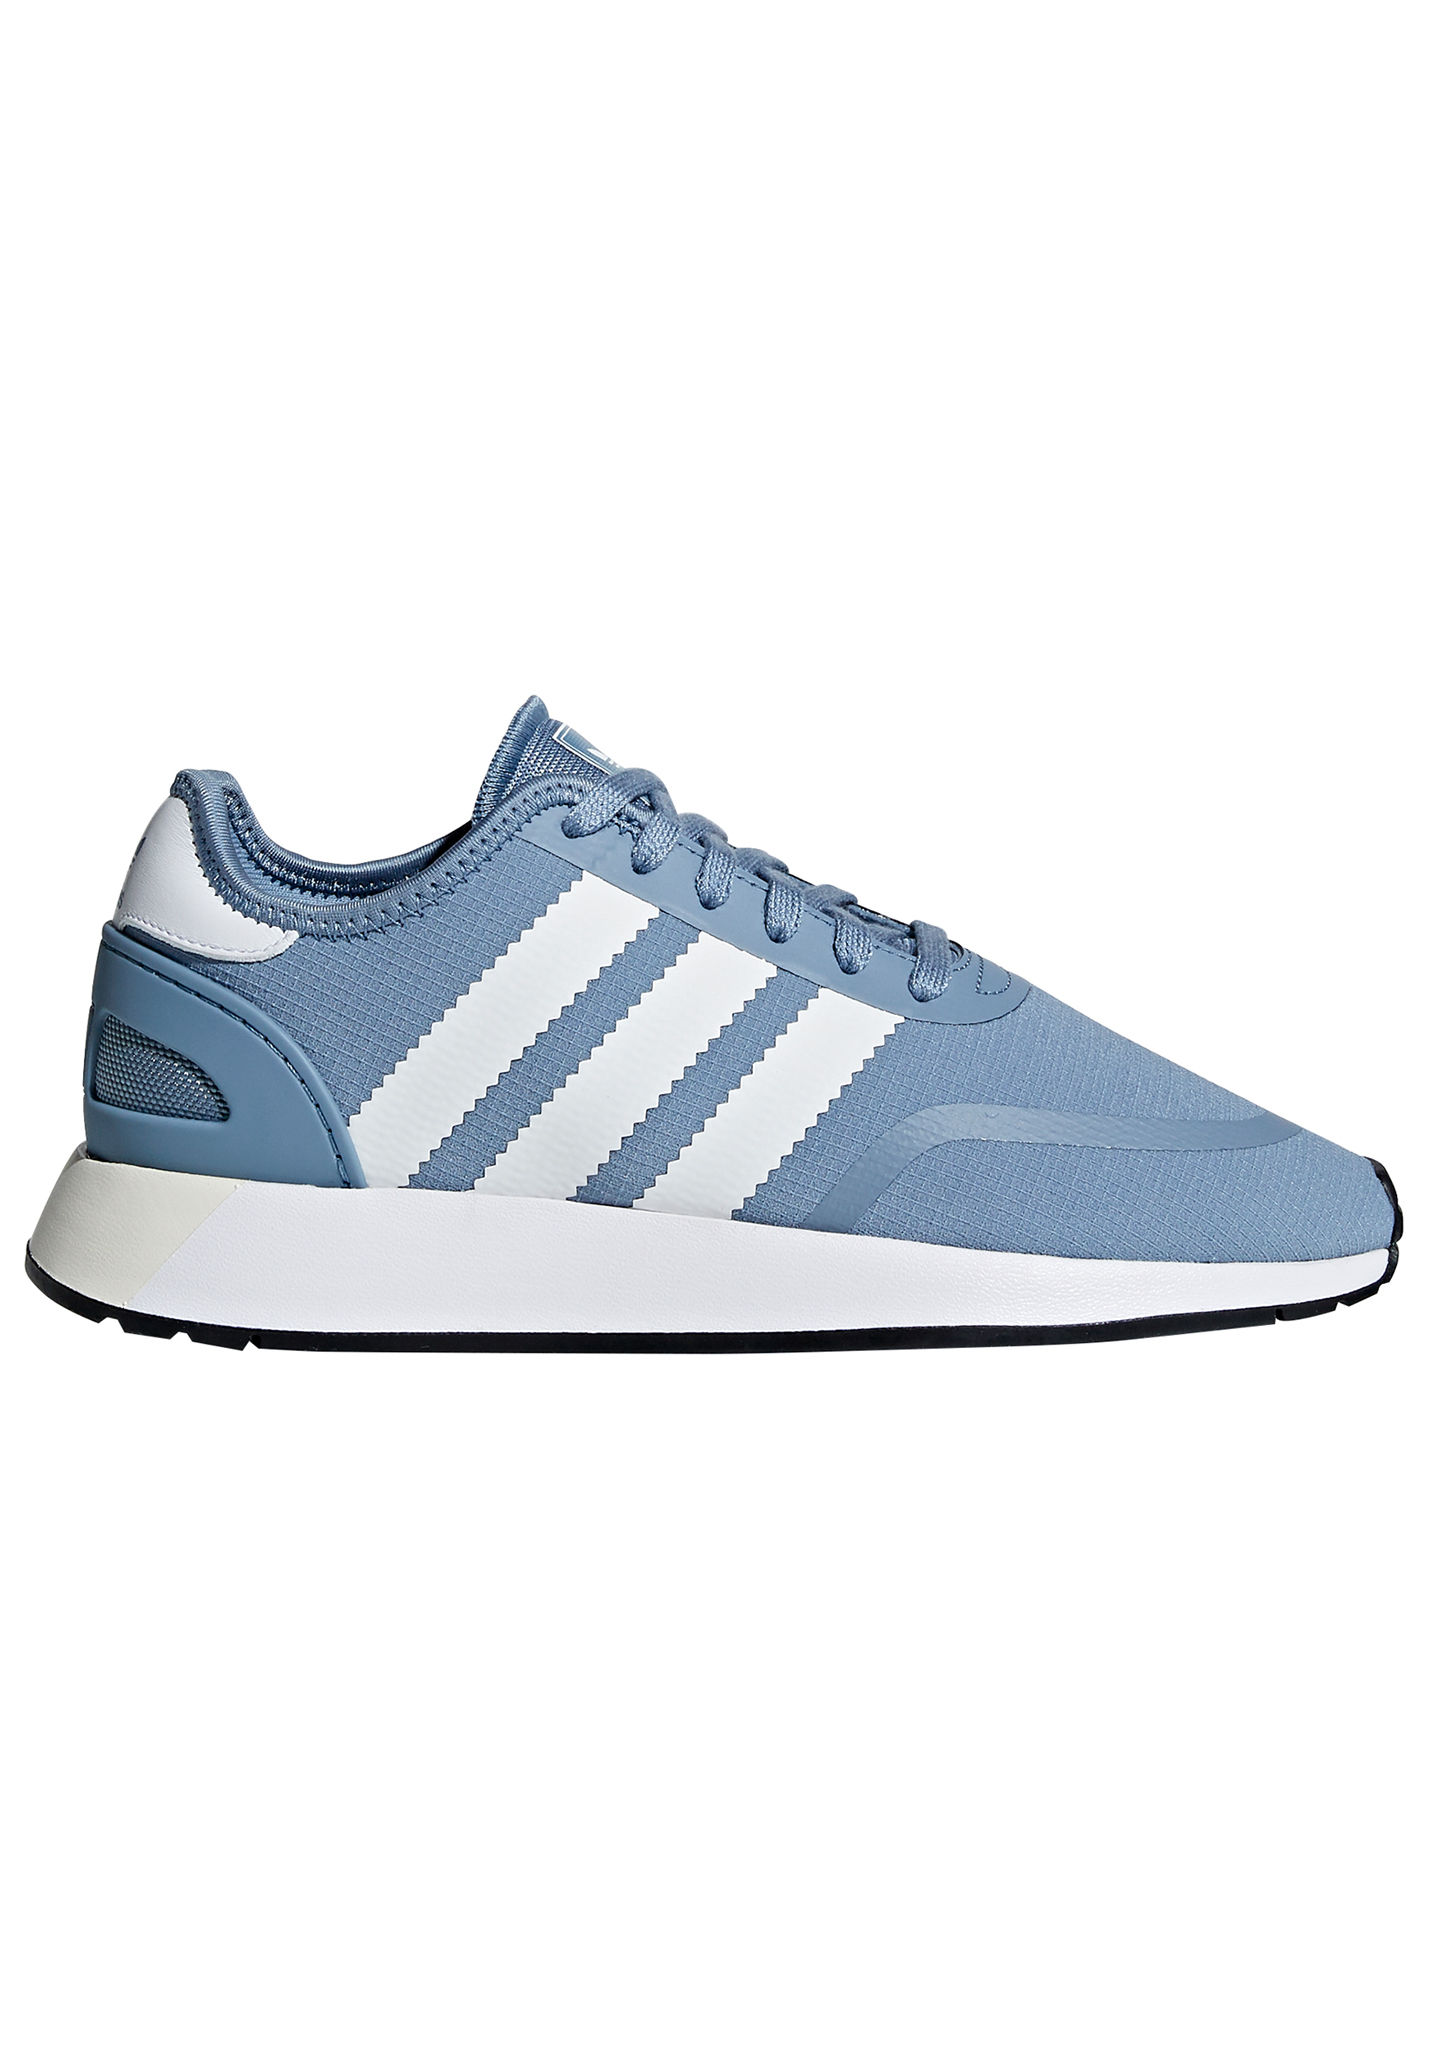 99e08076965912 ADIDAS ORIGINALS N-5923 - Sneakers for Women - Blue - Planet Sports